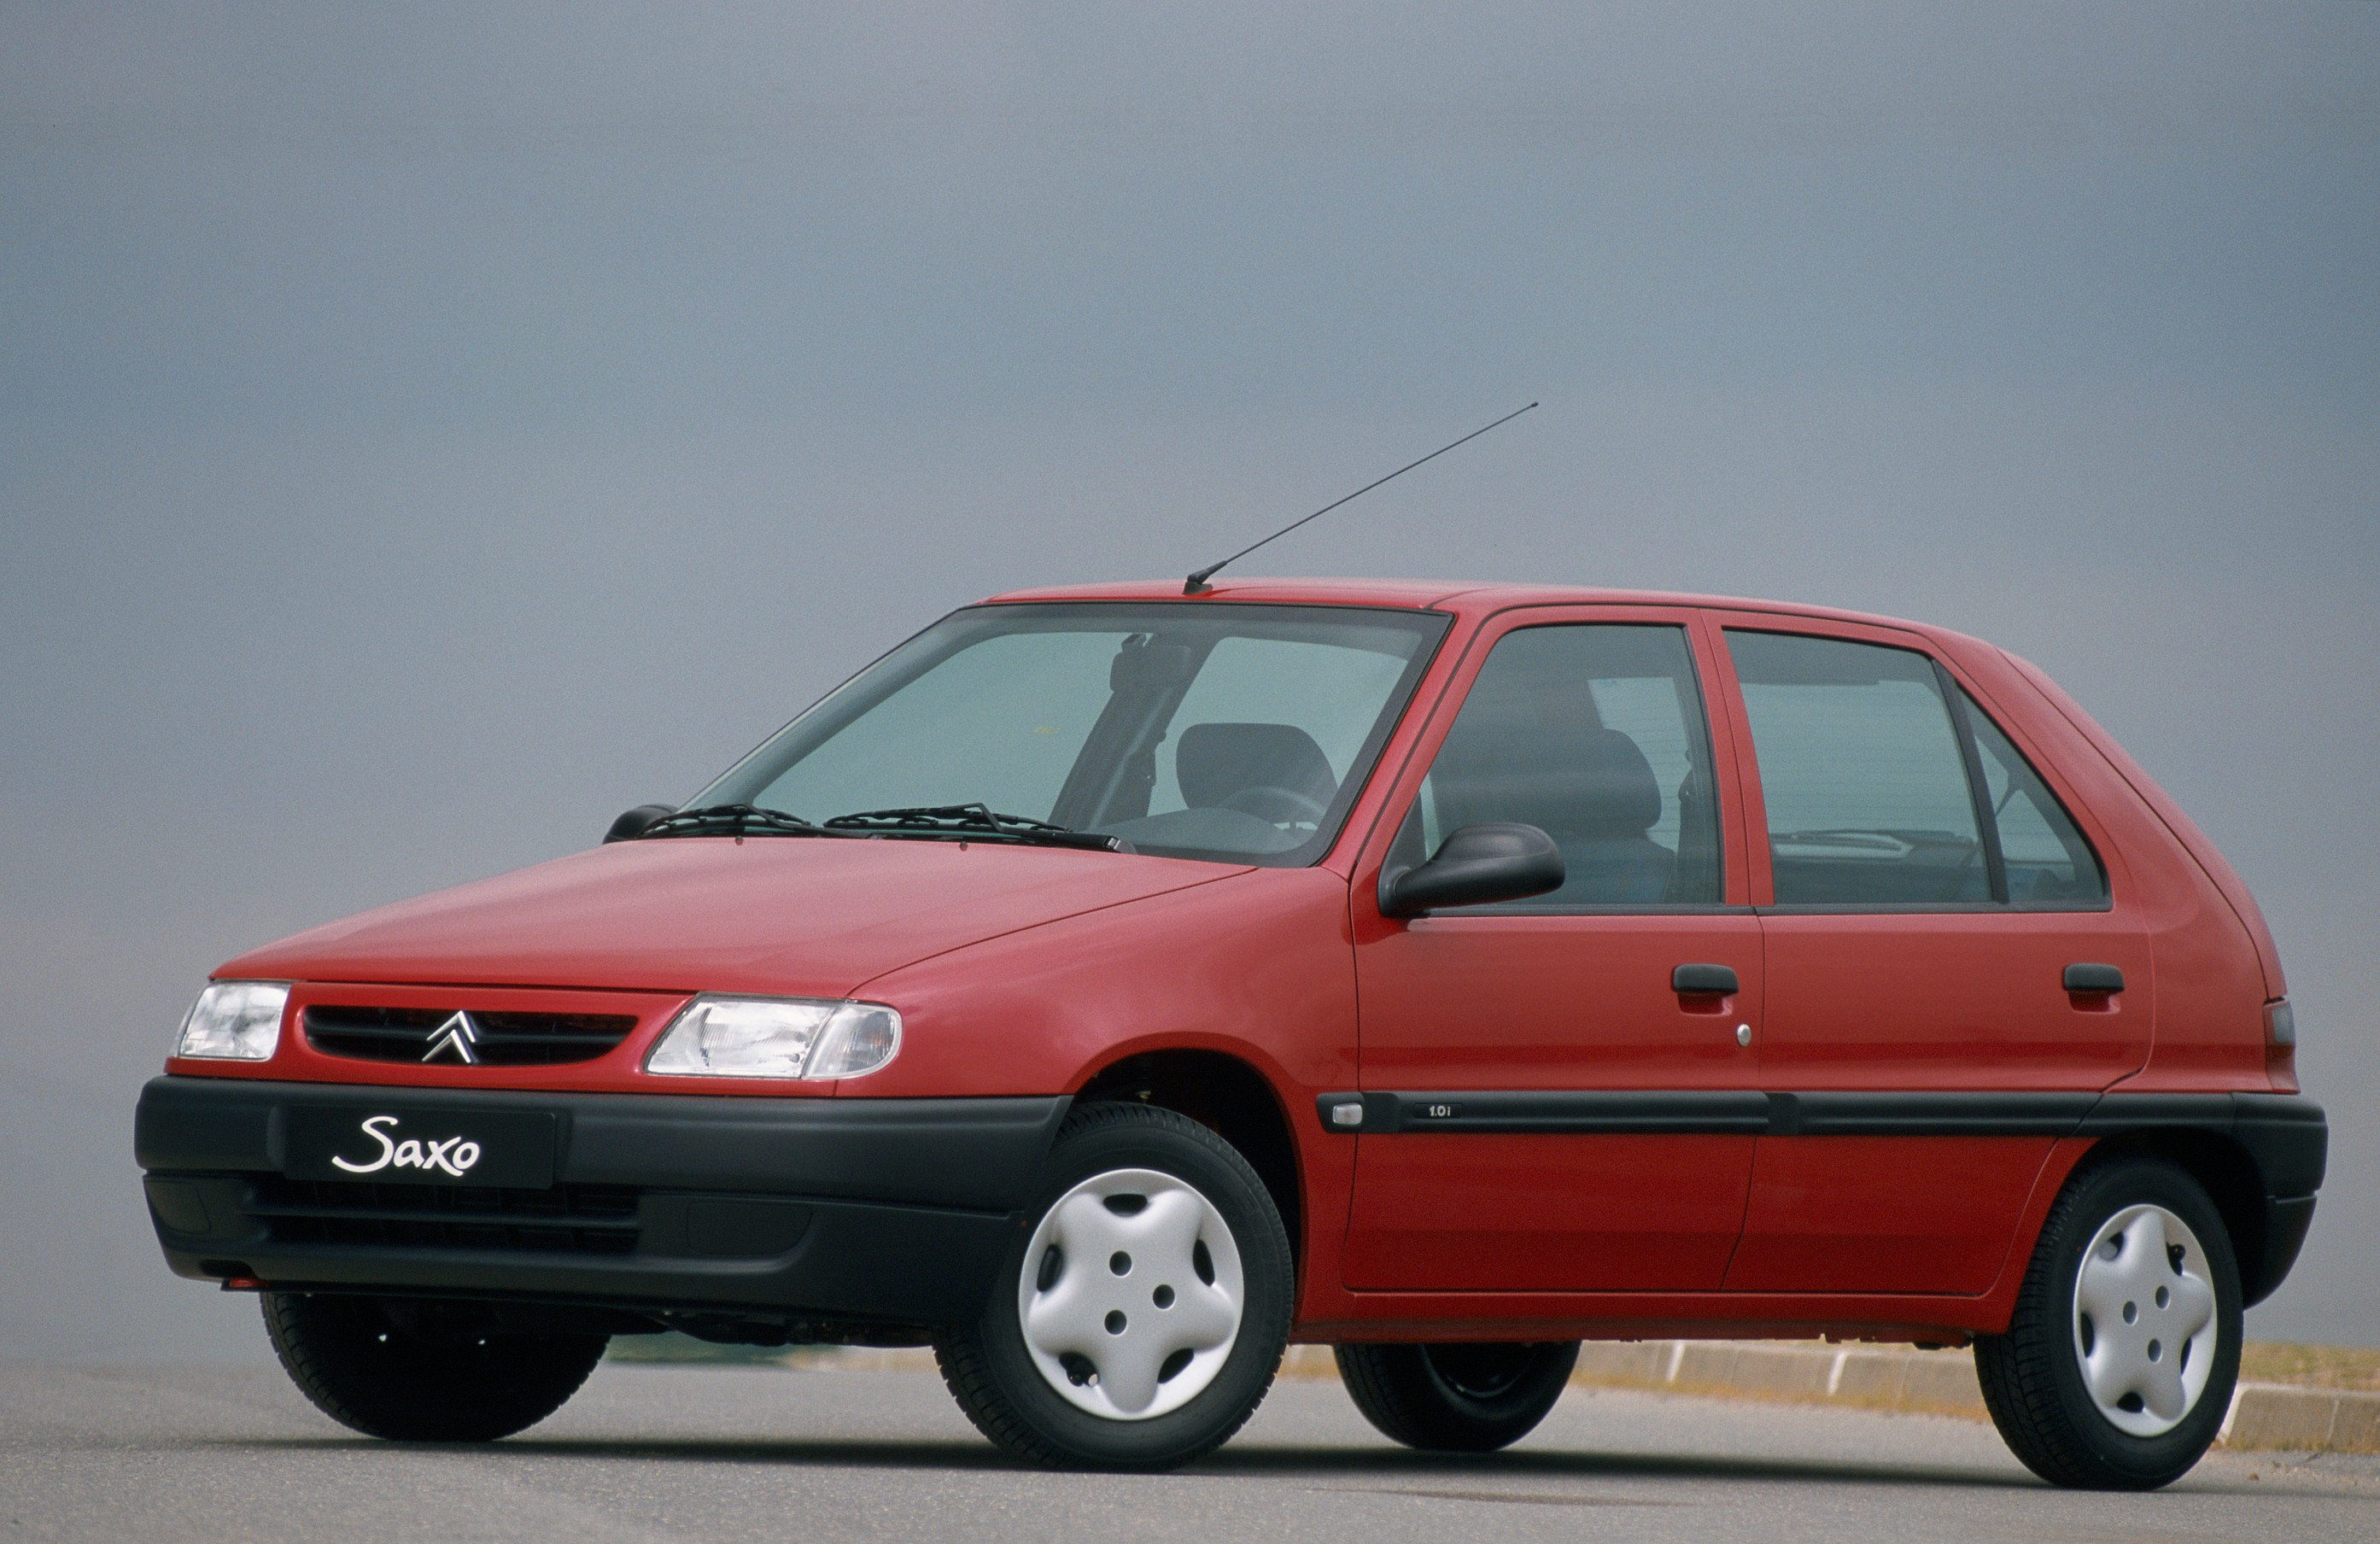 Cars citroen saxo